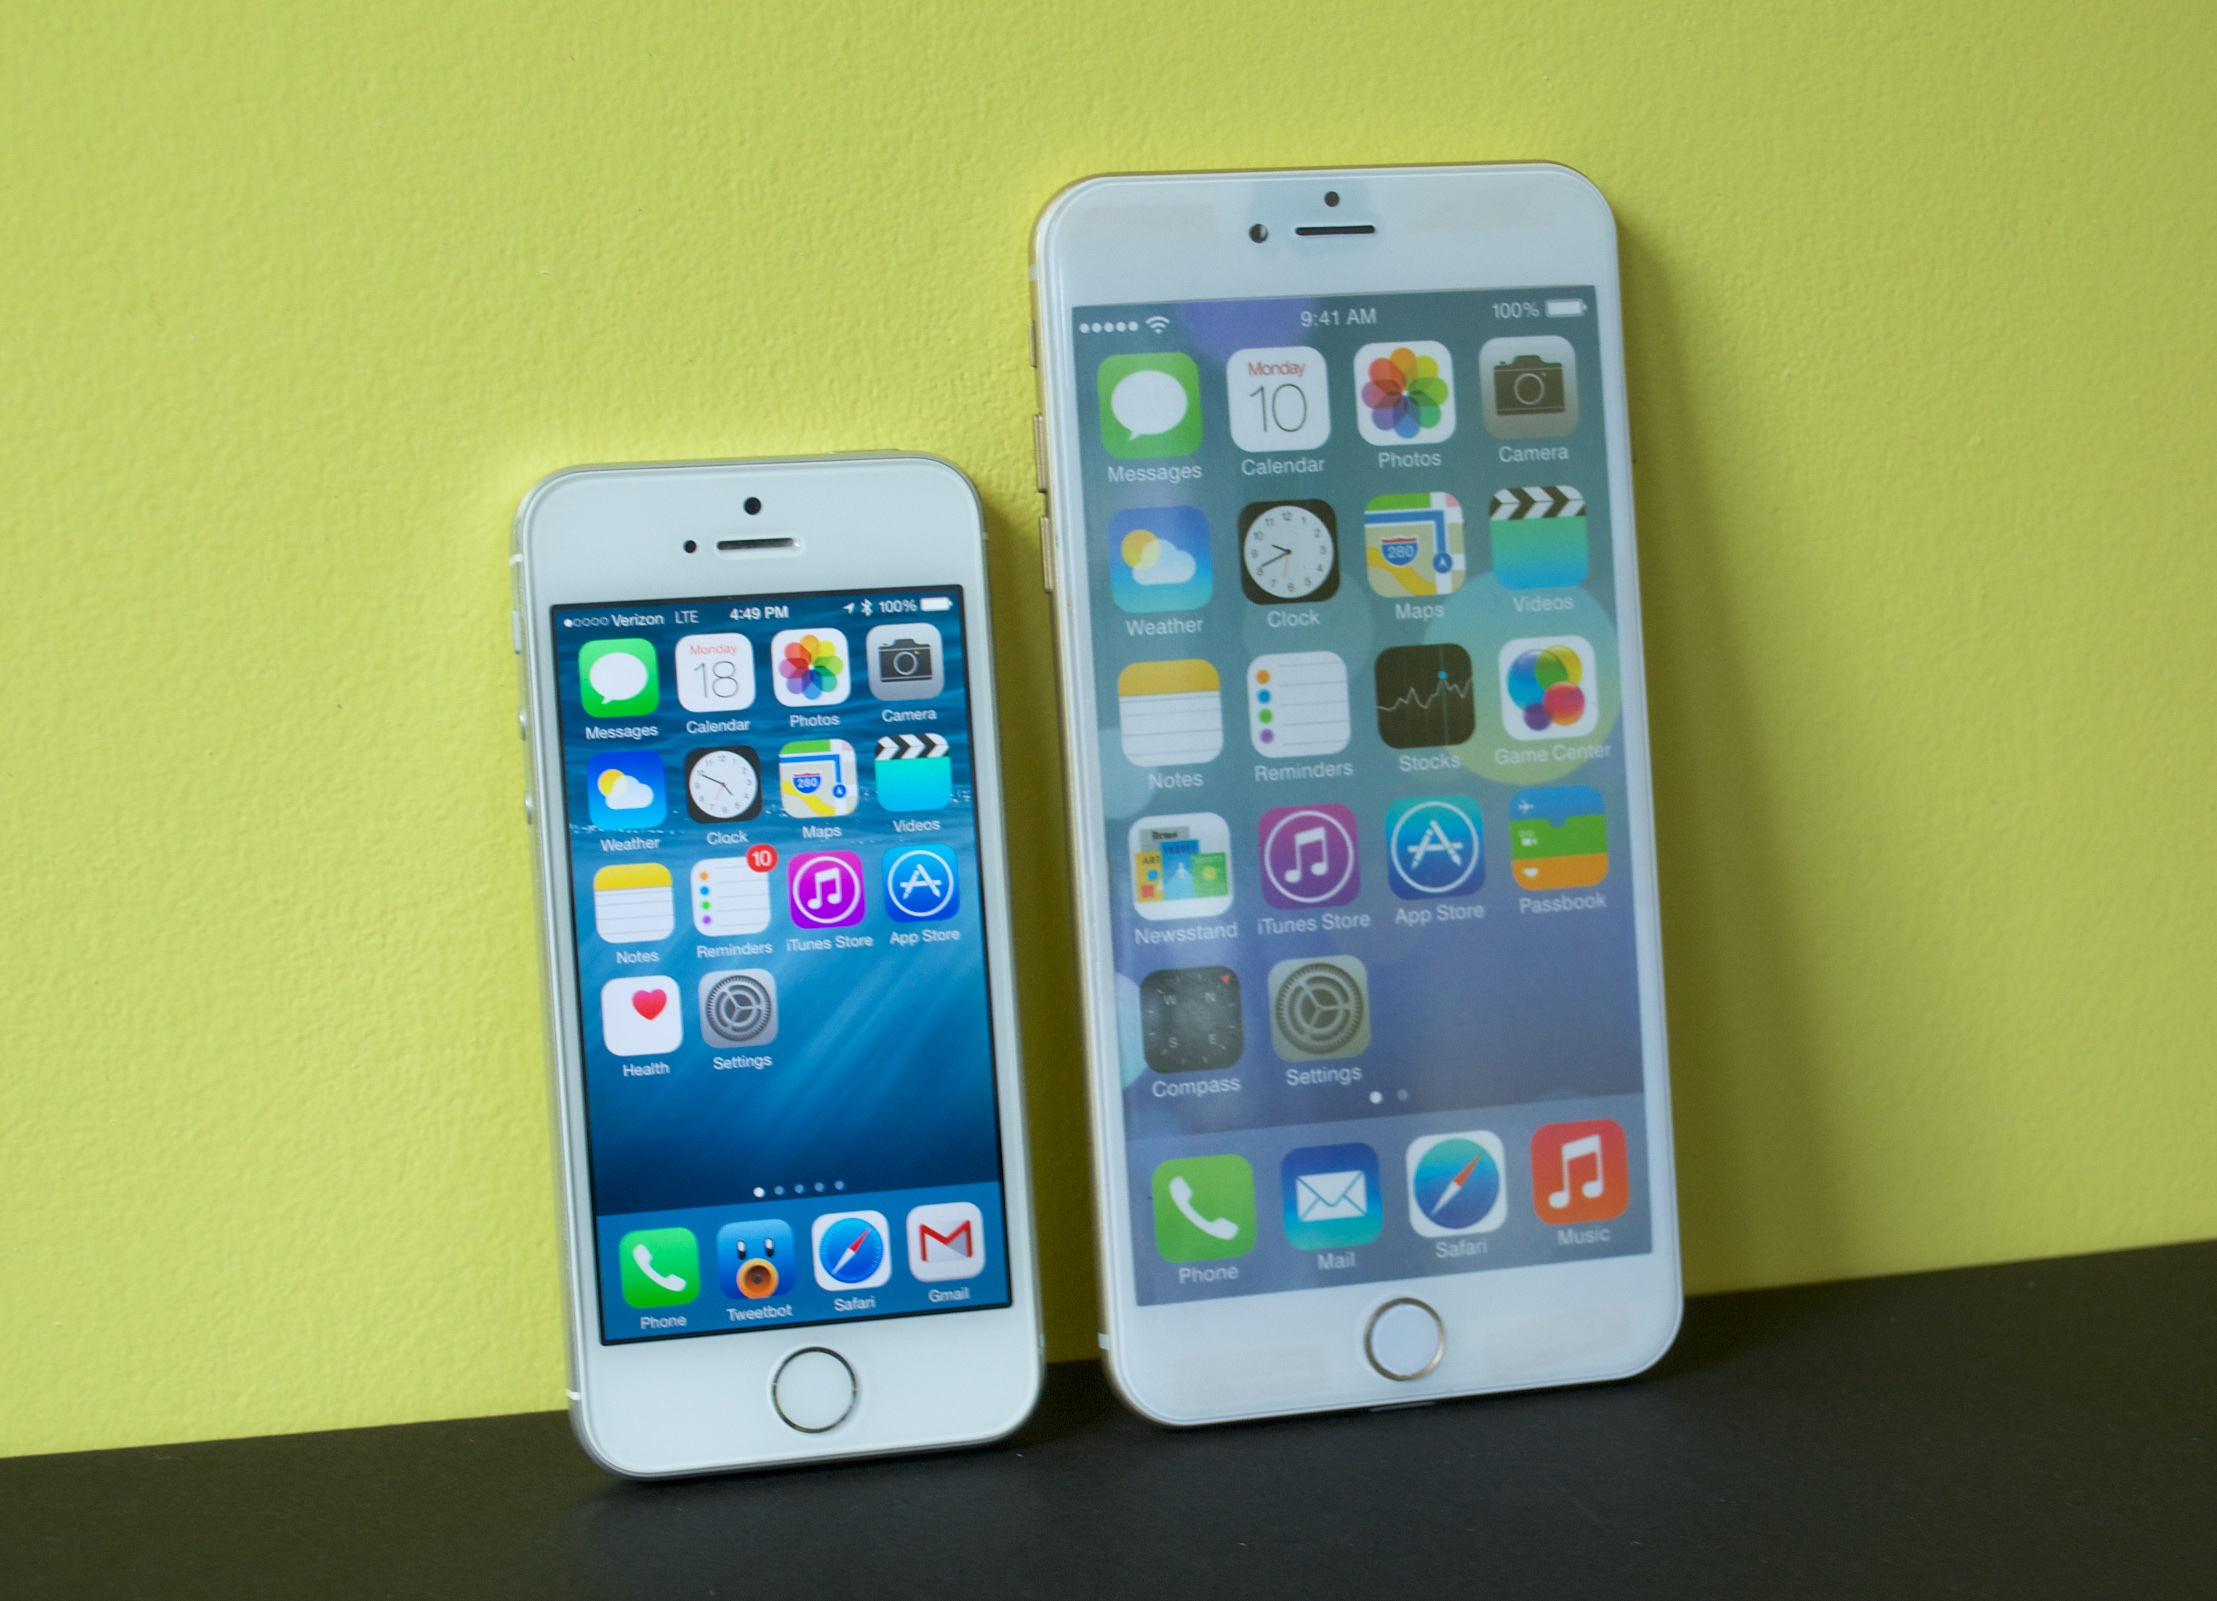 iPhone 6 vs iPhone 5s: 5 Things to Know About the Big iPhone